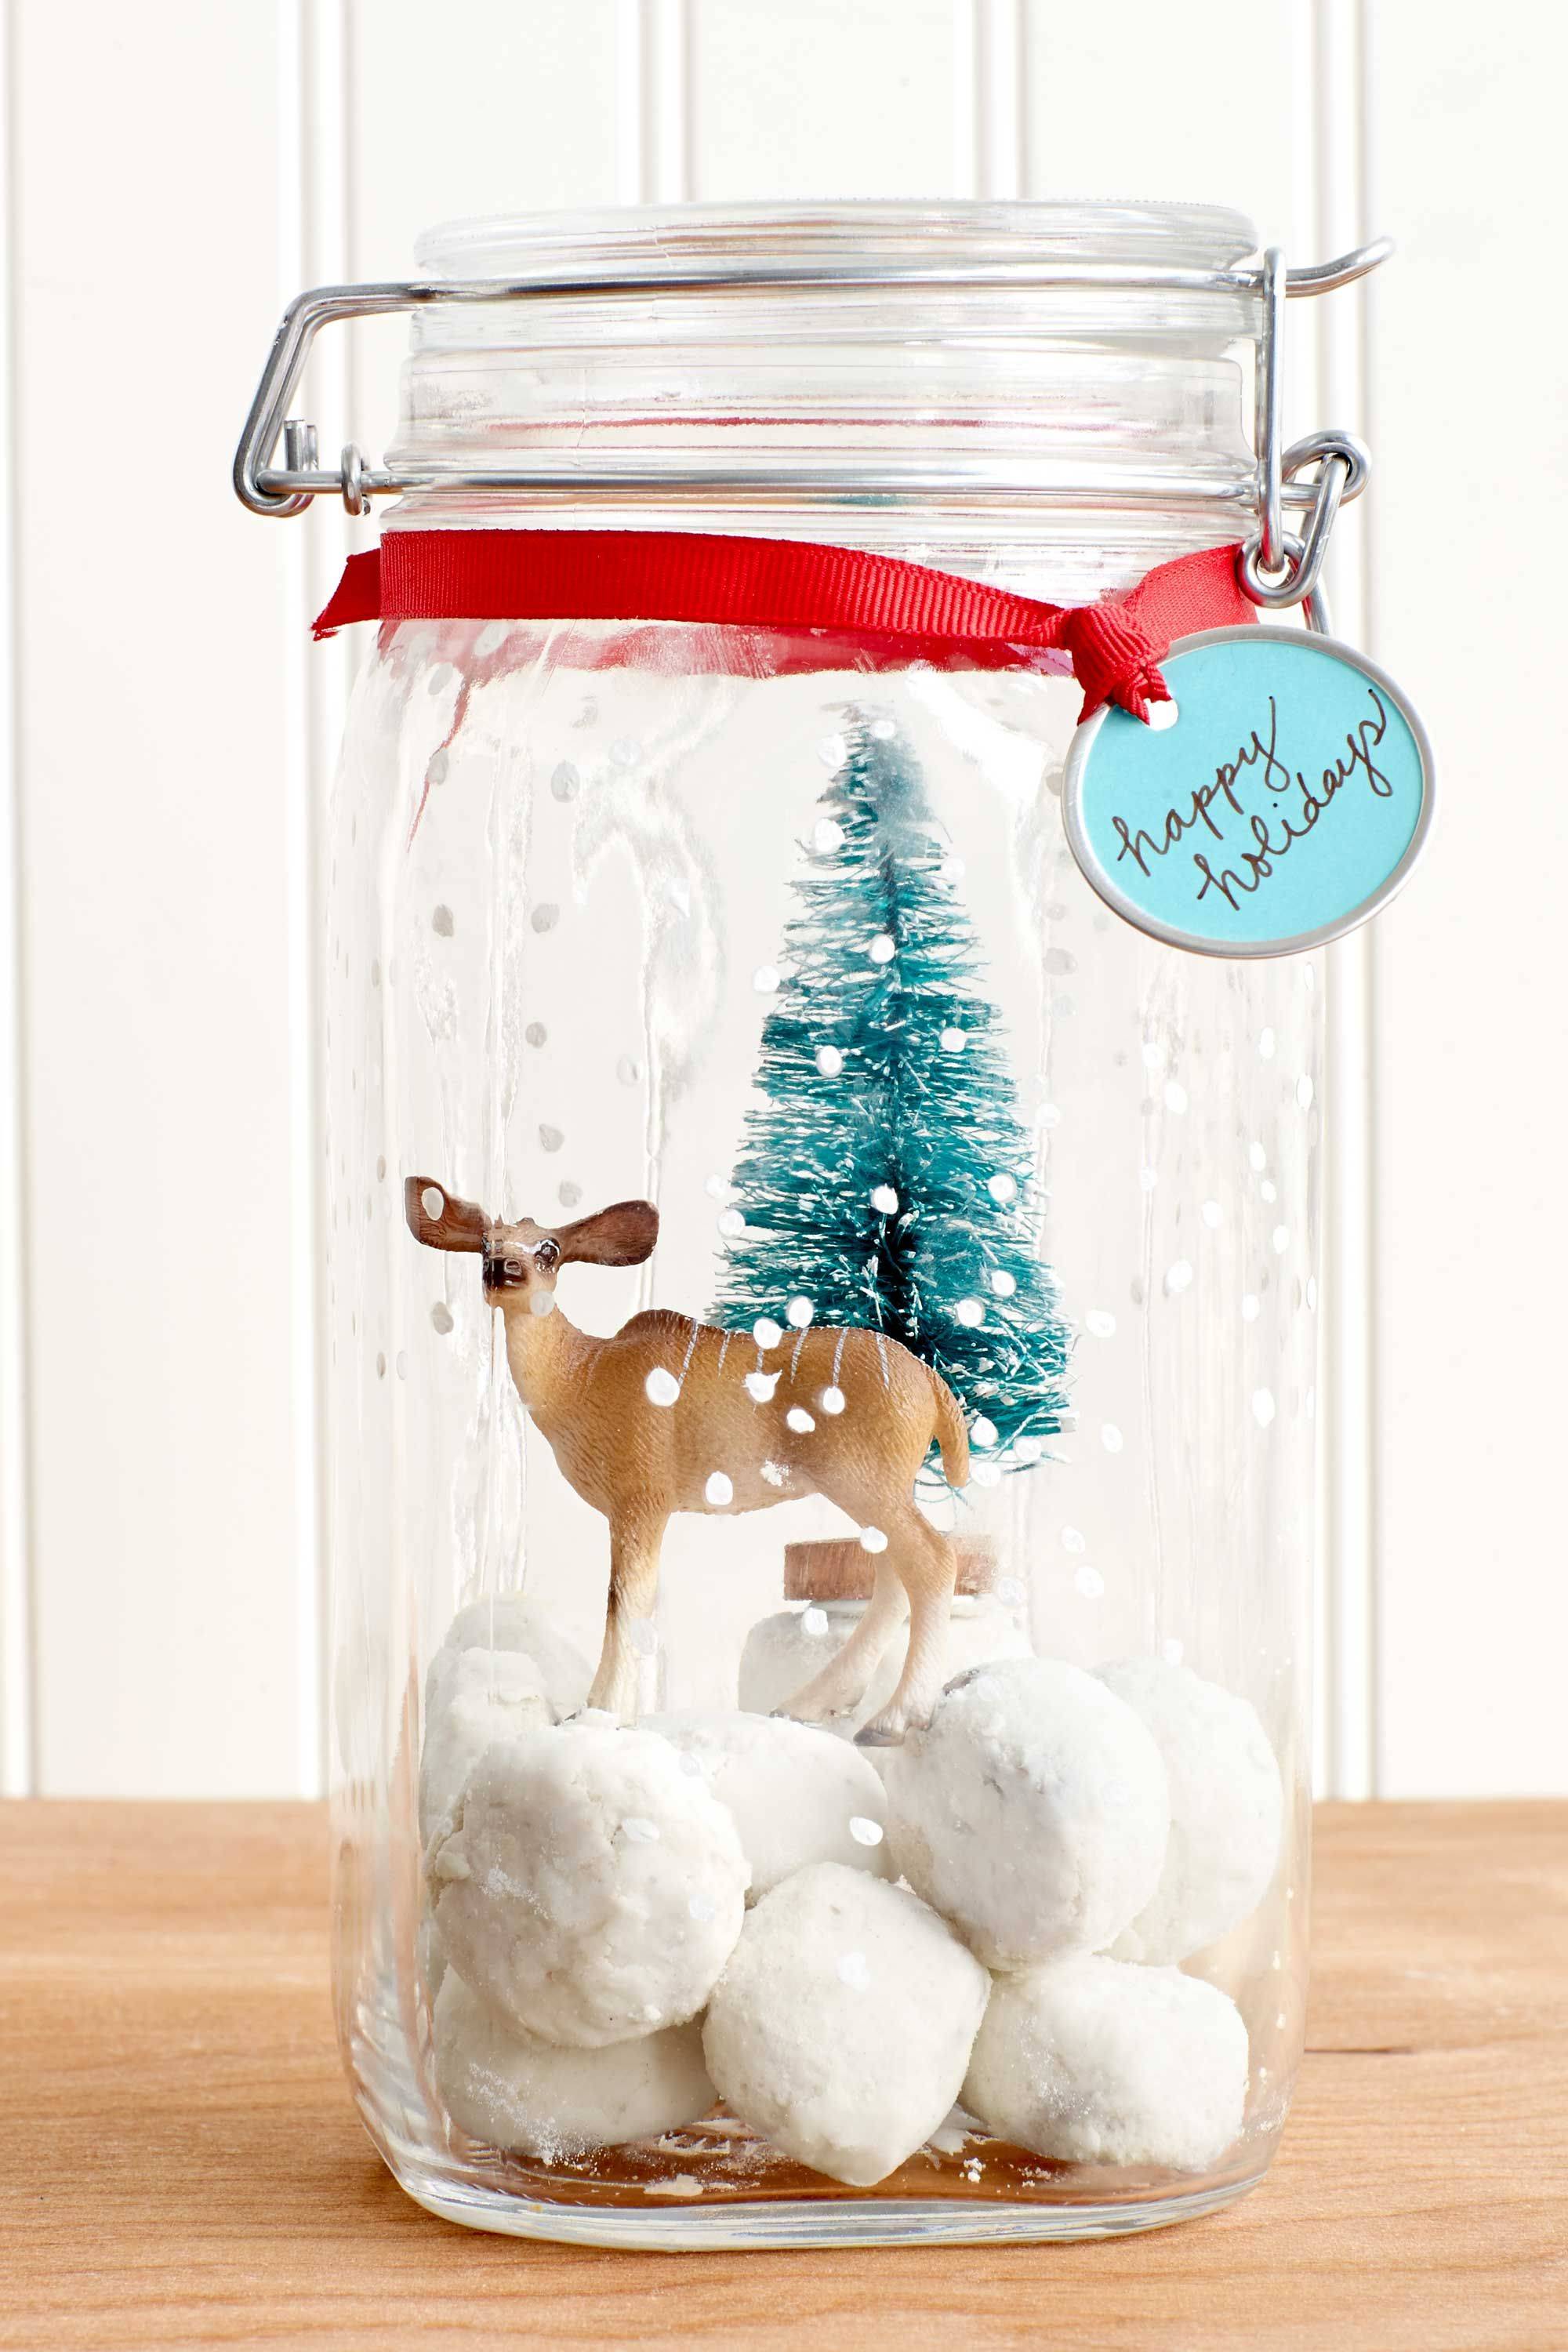 How To Decorate A Cookie Jar 50 Homemade Food Gifts For The Holidays  Jar Christmas Baking